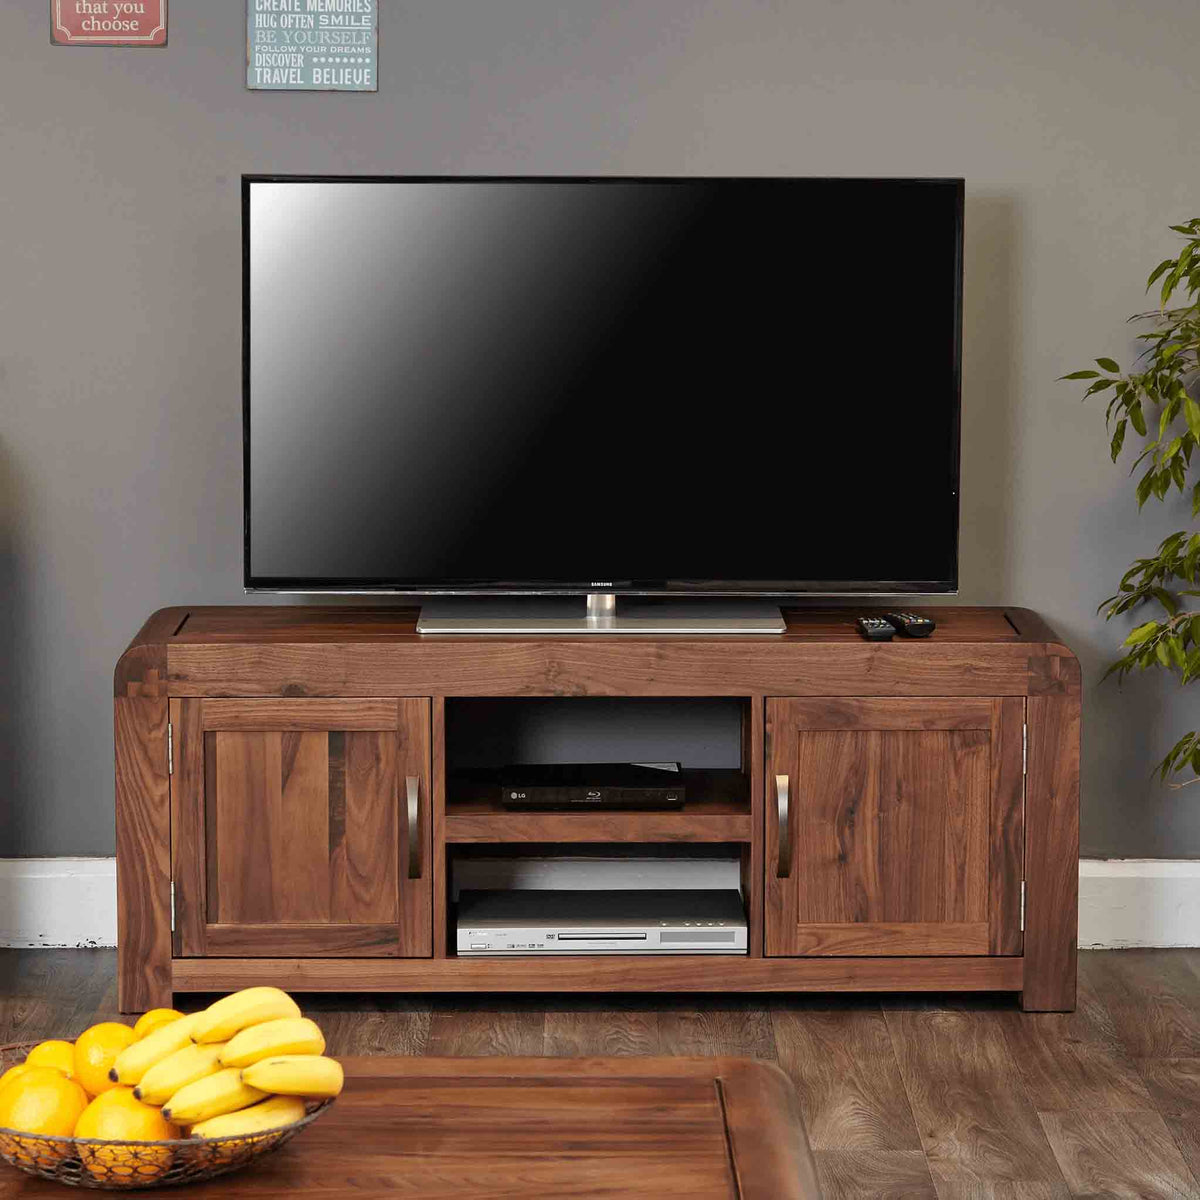 The Salem Walnut Large Wooden TV Stand Storage Unit 142cm from Roseland Furniture